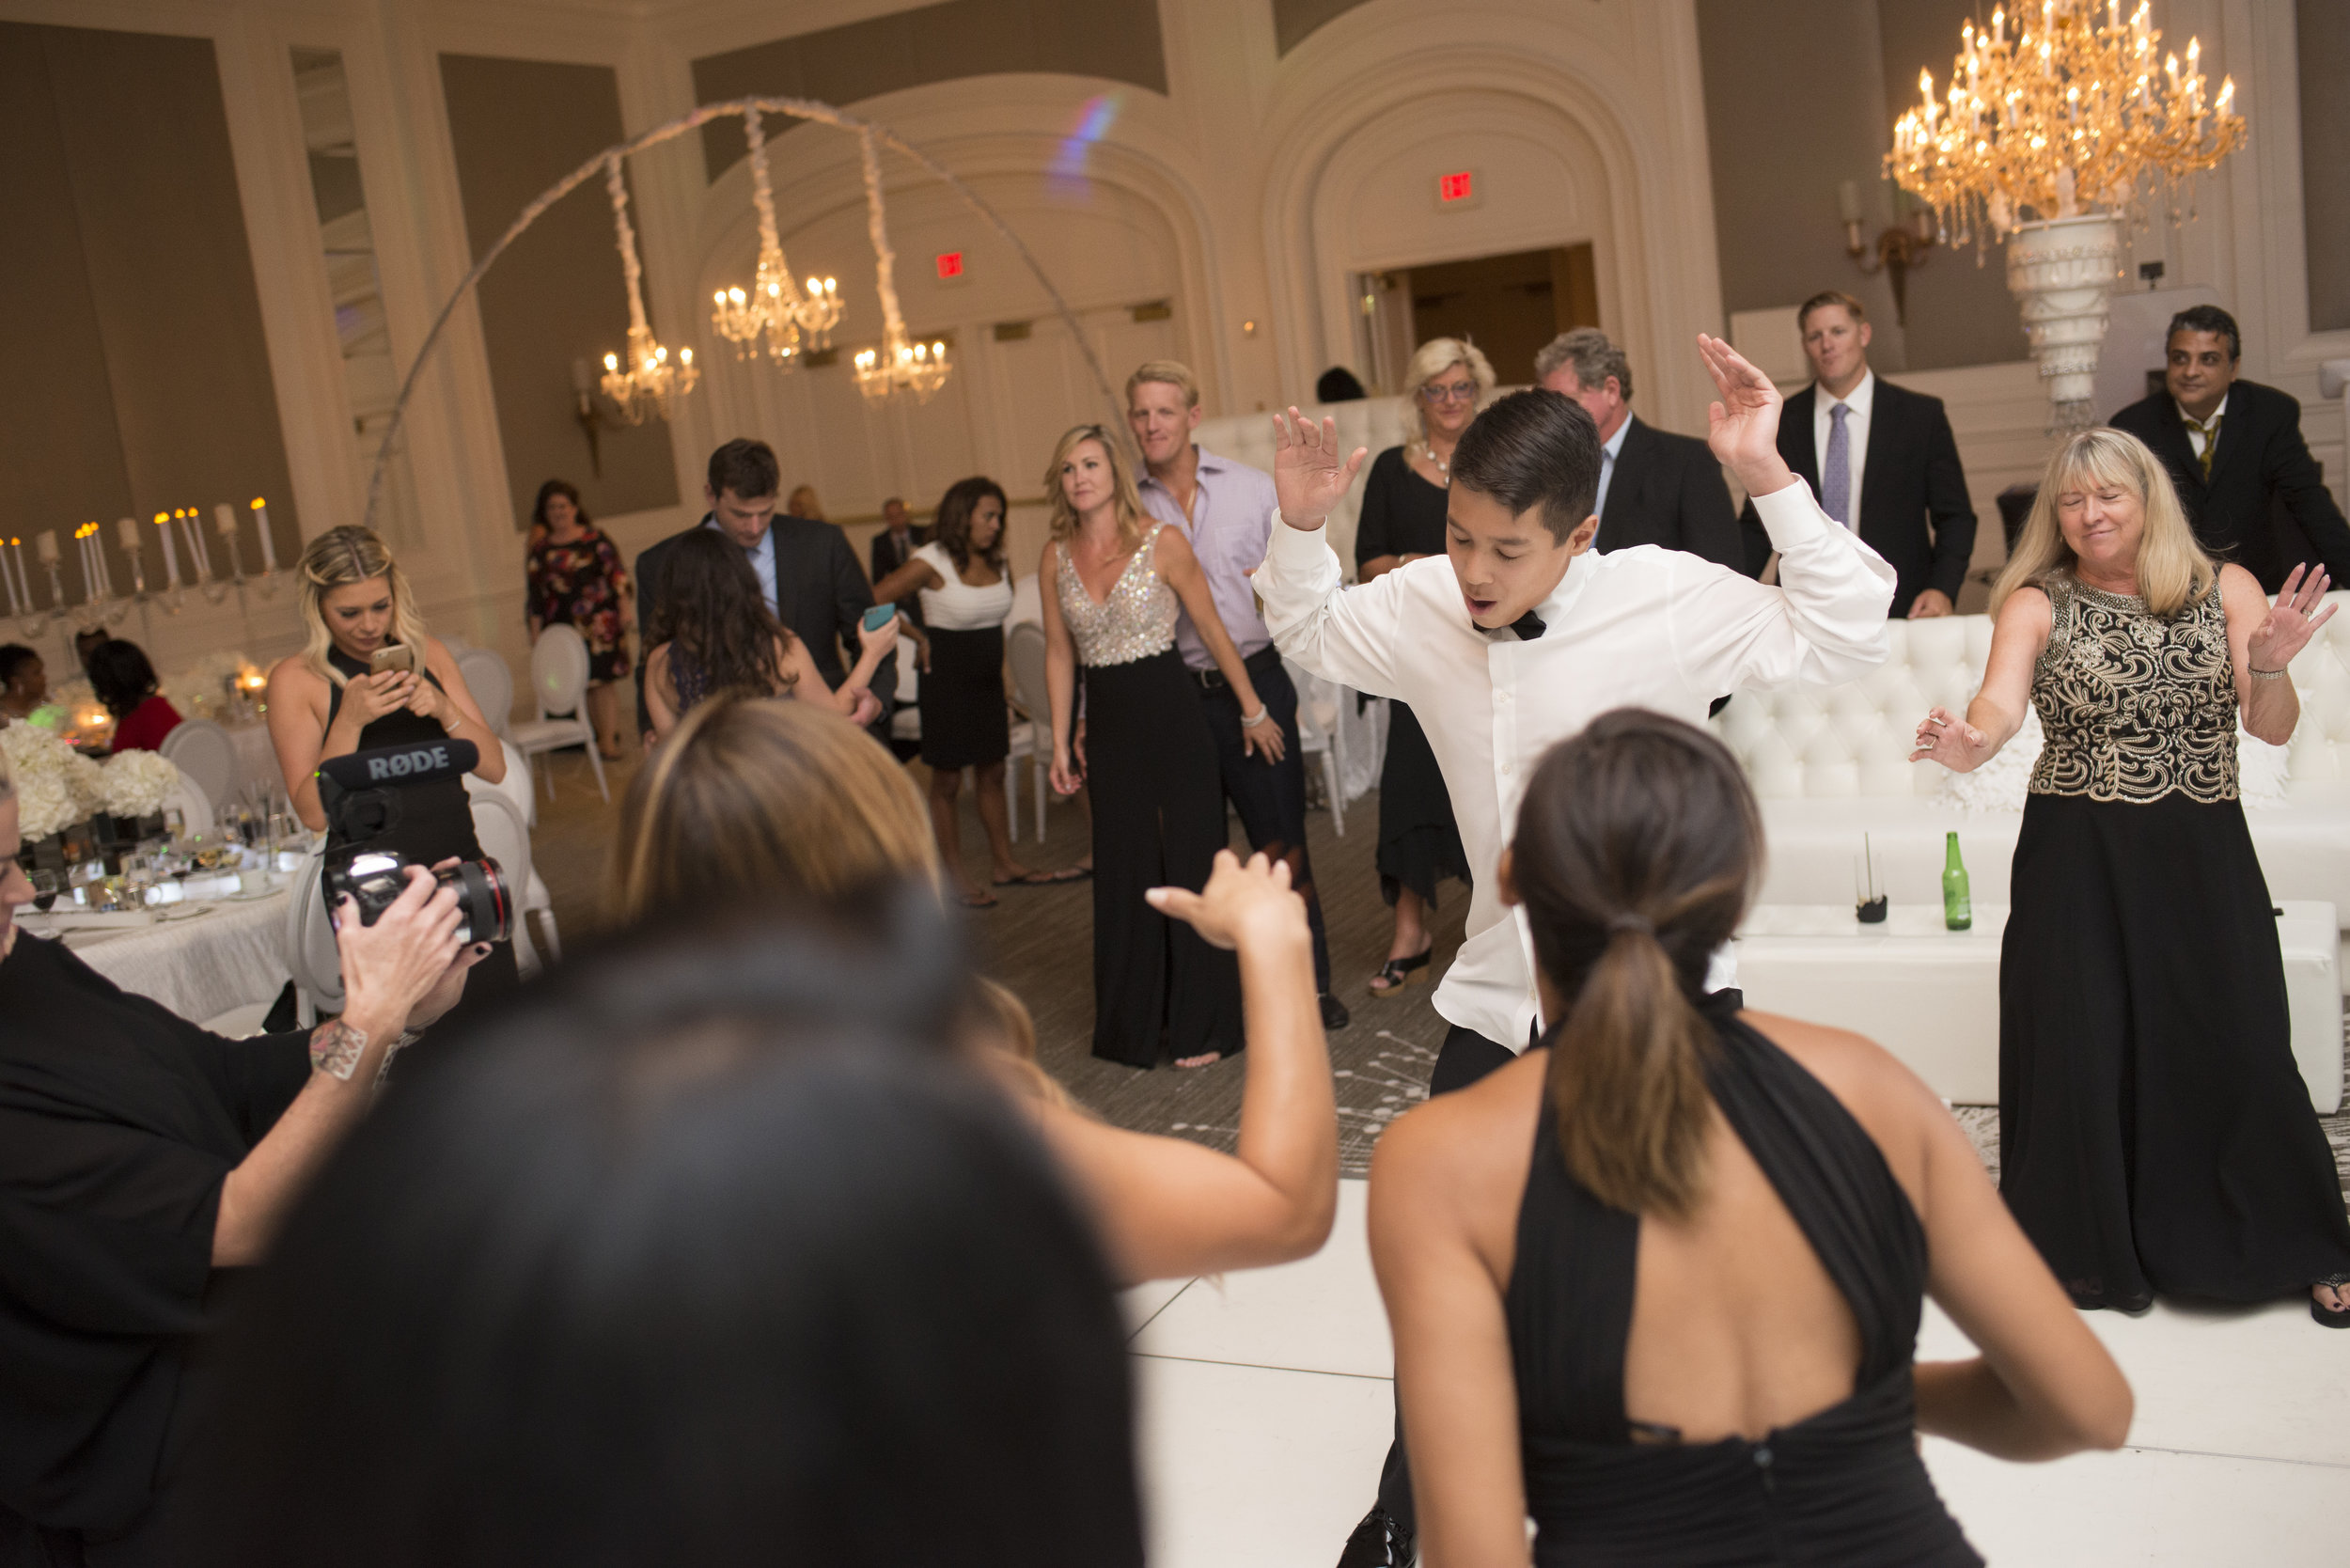 Dance party. Four Seasons Wedding by Las Vegas Wedding Planner Andrea Eppolito. Image by AltF Photography. Decor by DBD Vegas.